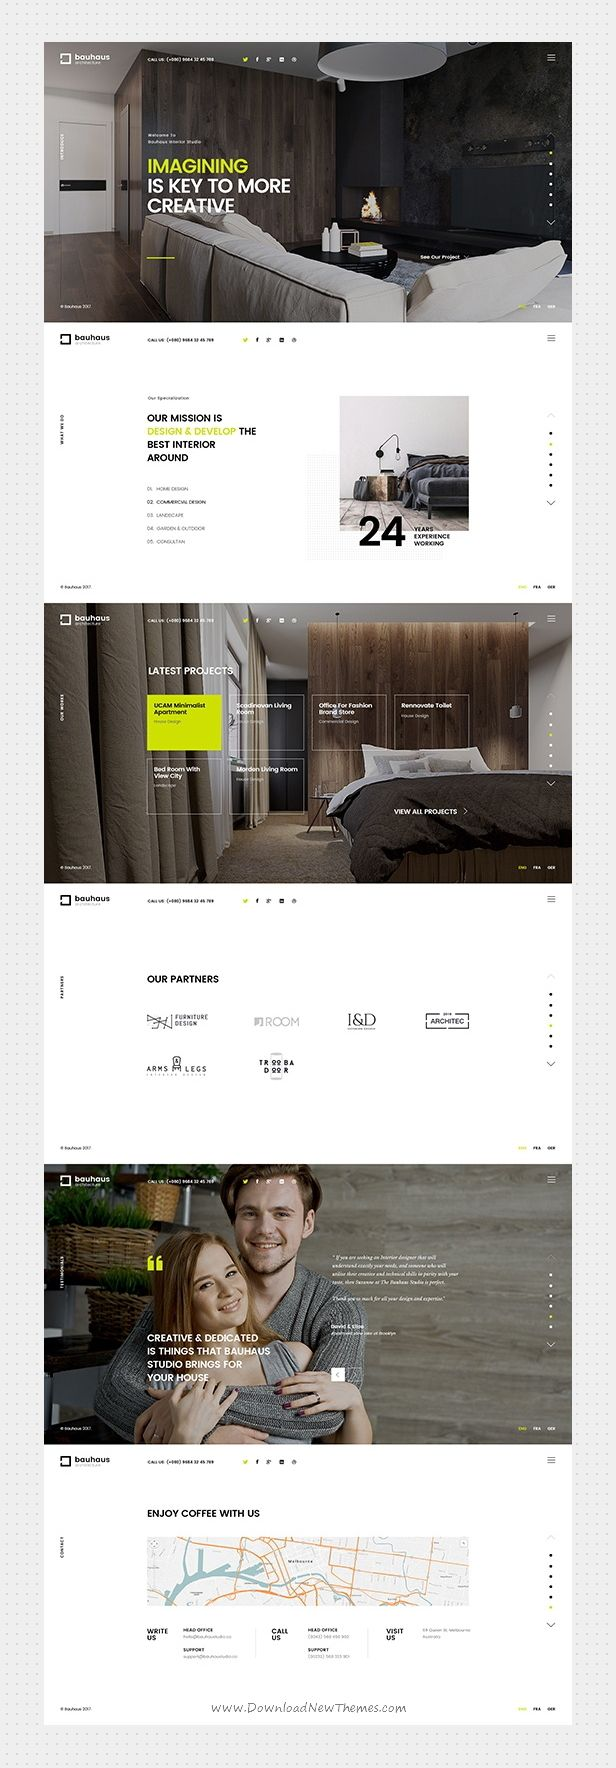 Bauhaus is a clean and modern design 3in1 responsive #HTML bootstrap template for stunning #architecture and #interiordesign companies website download now➩ https://themeforest.net/item/bauhaus-architecture-interior-template/19649490?ref=Datasata